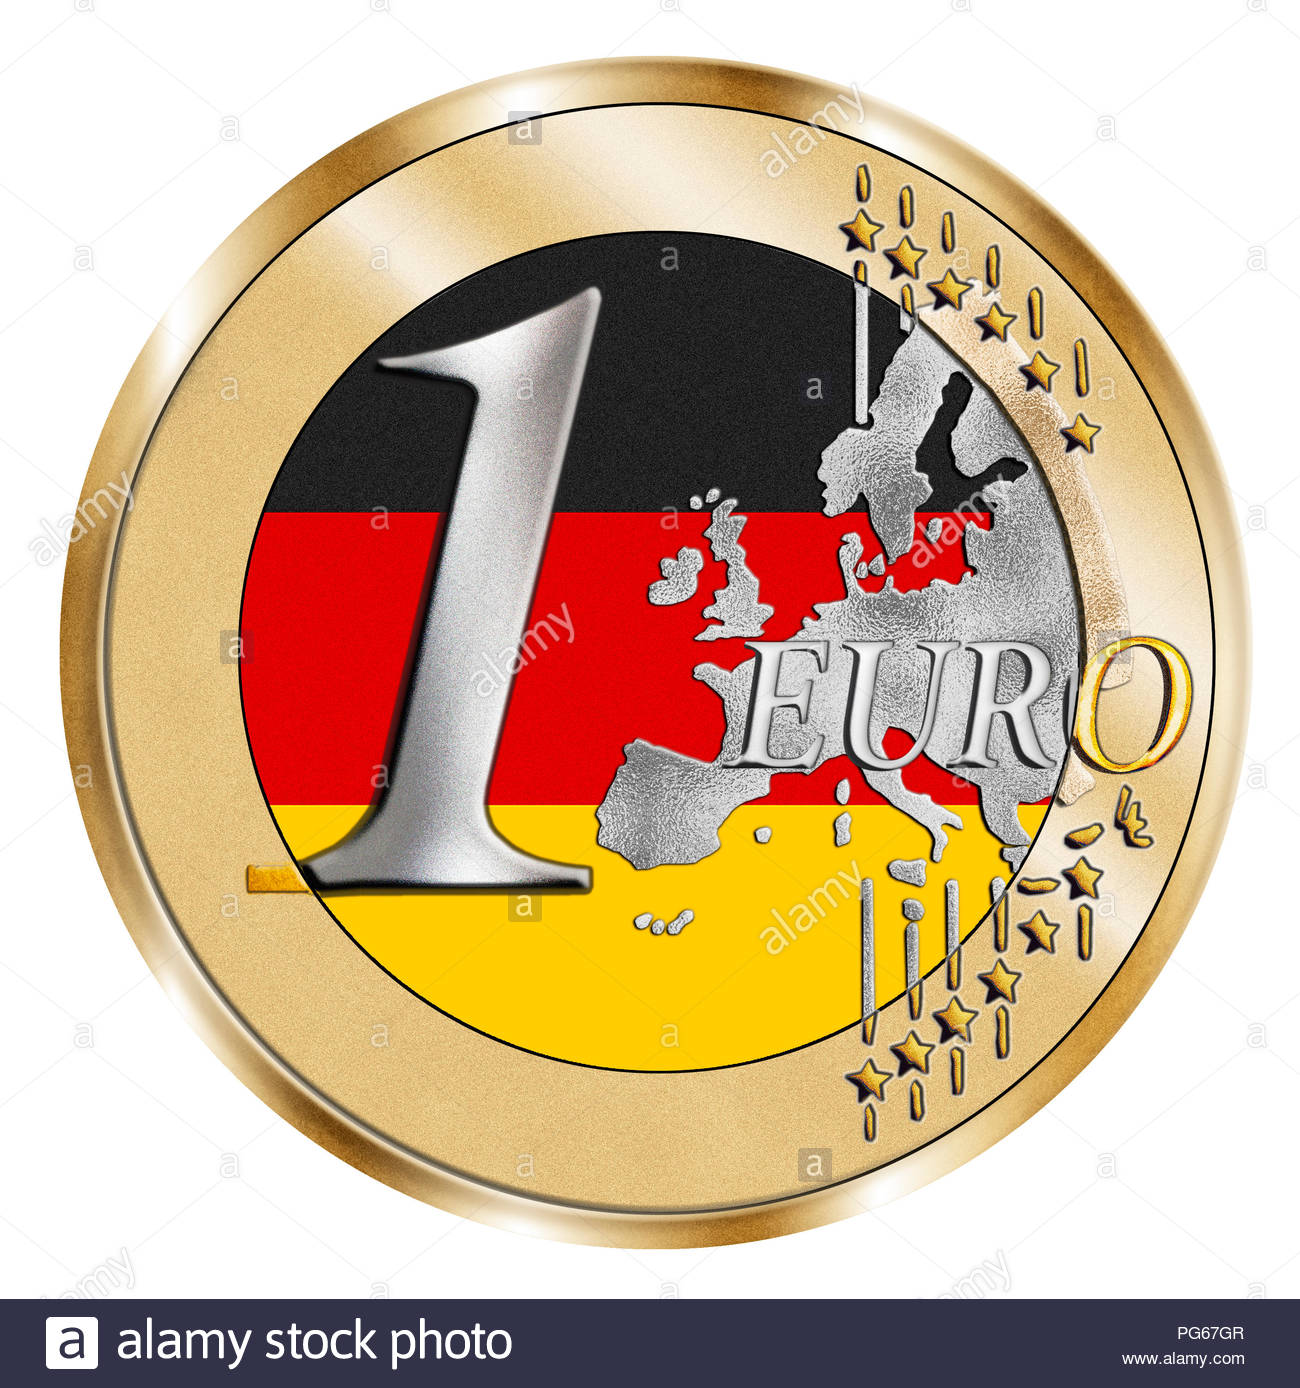 A montage of a stylised 1 Euro coin and a German national flag. A dark Photoshop composite emphasising Euro dominance. - Stock Image